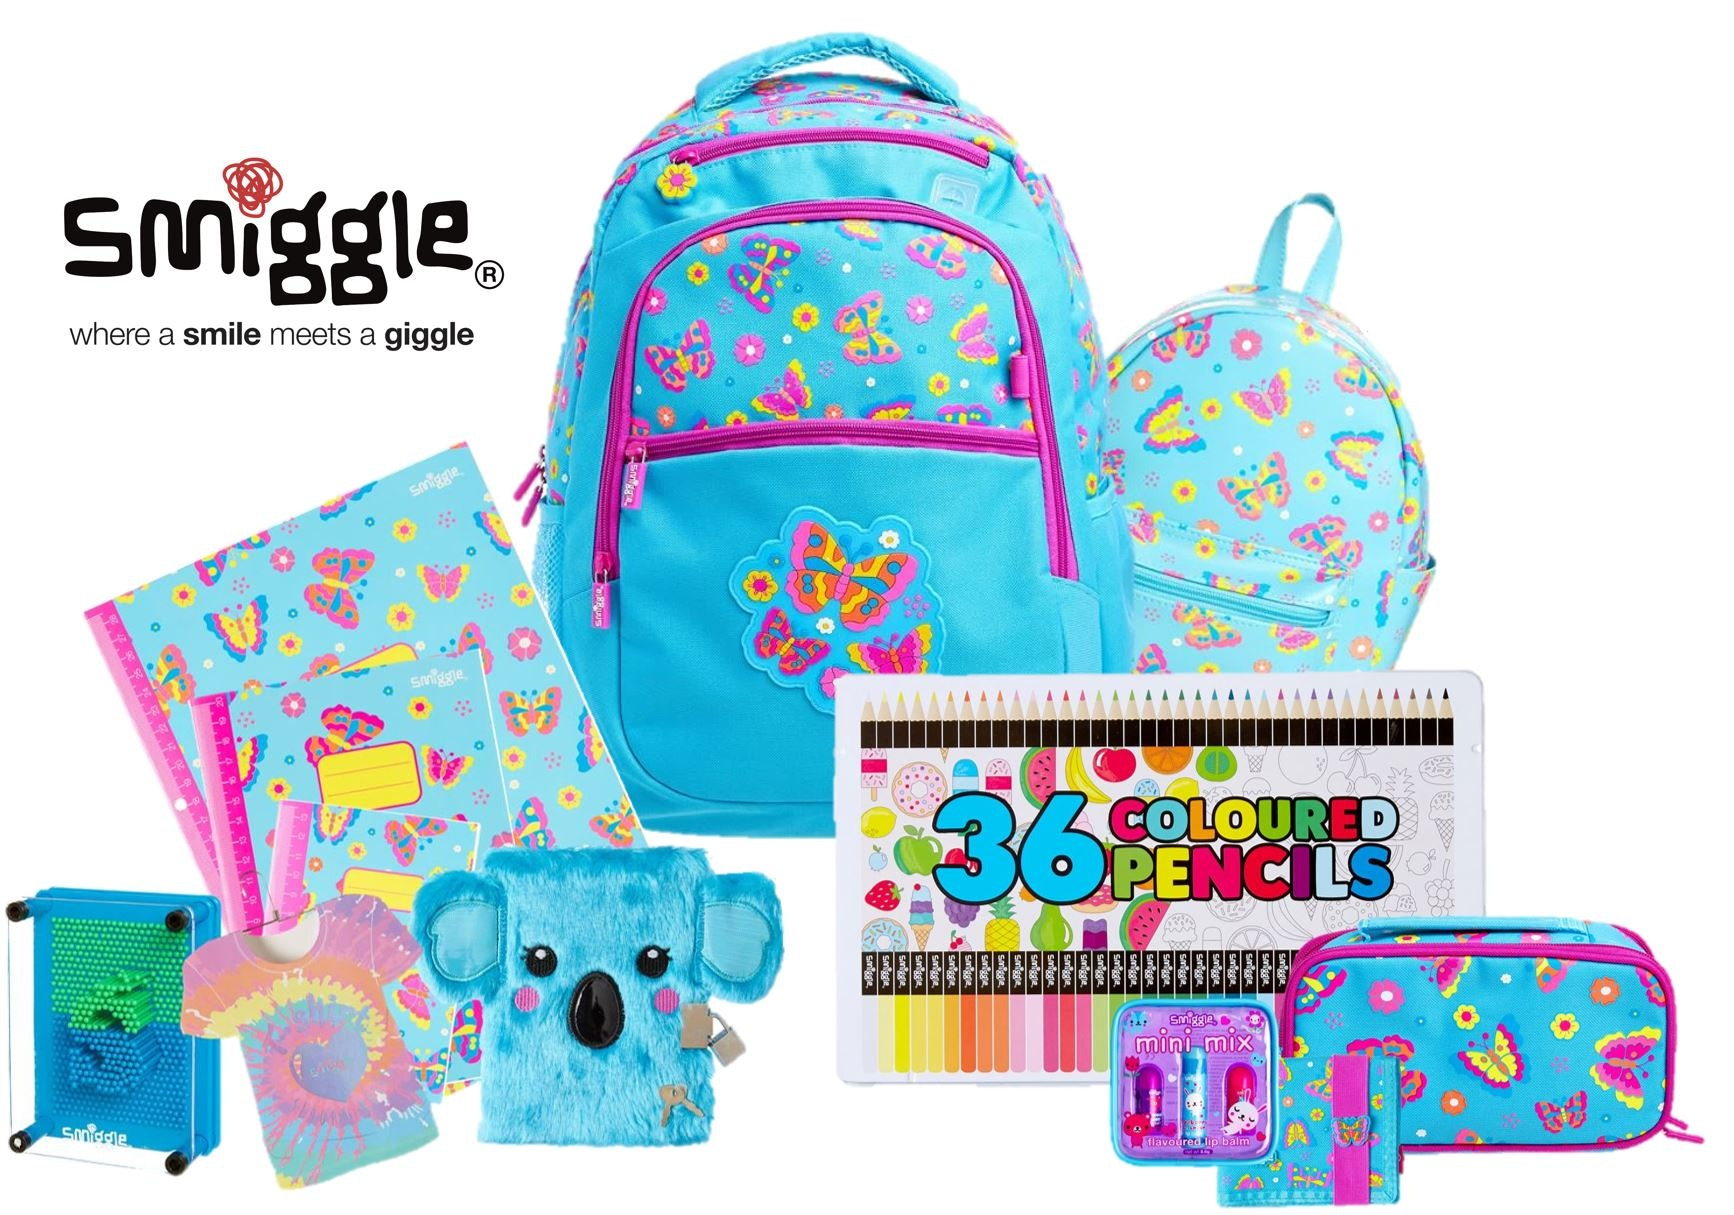 Smiggle Stationery Pack sweepstakes